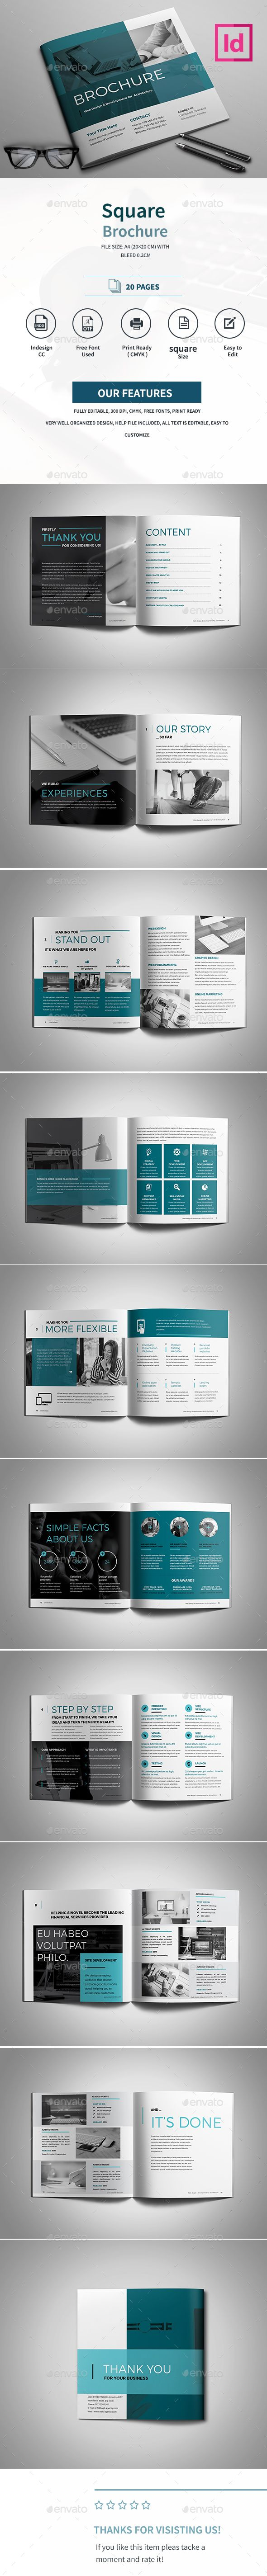 Square Brochure — InDesign INDD #elegant #business • Available here → https://graphicriver.net/item/square-brochure/17840633?ref=pxcr